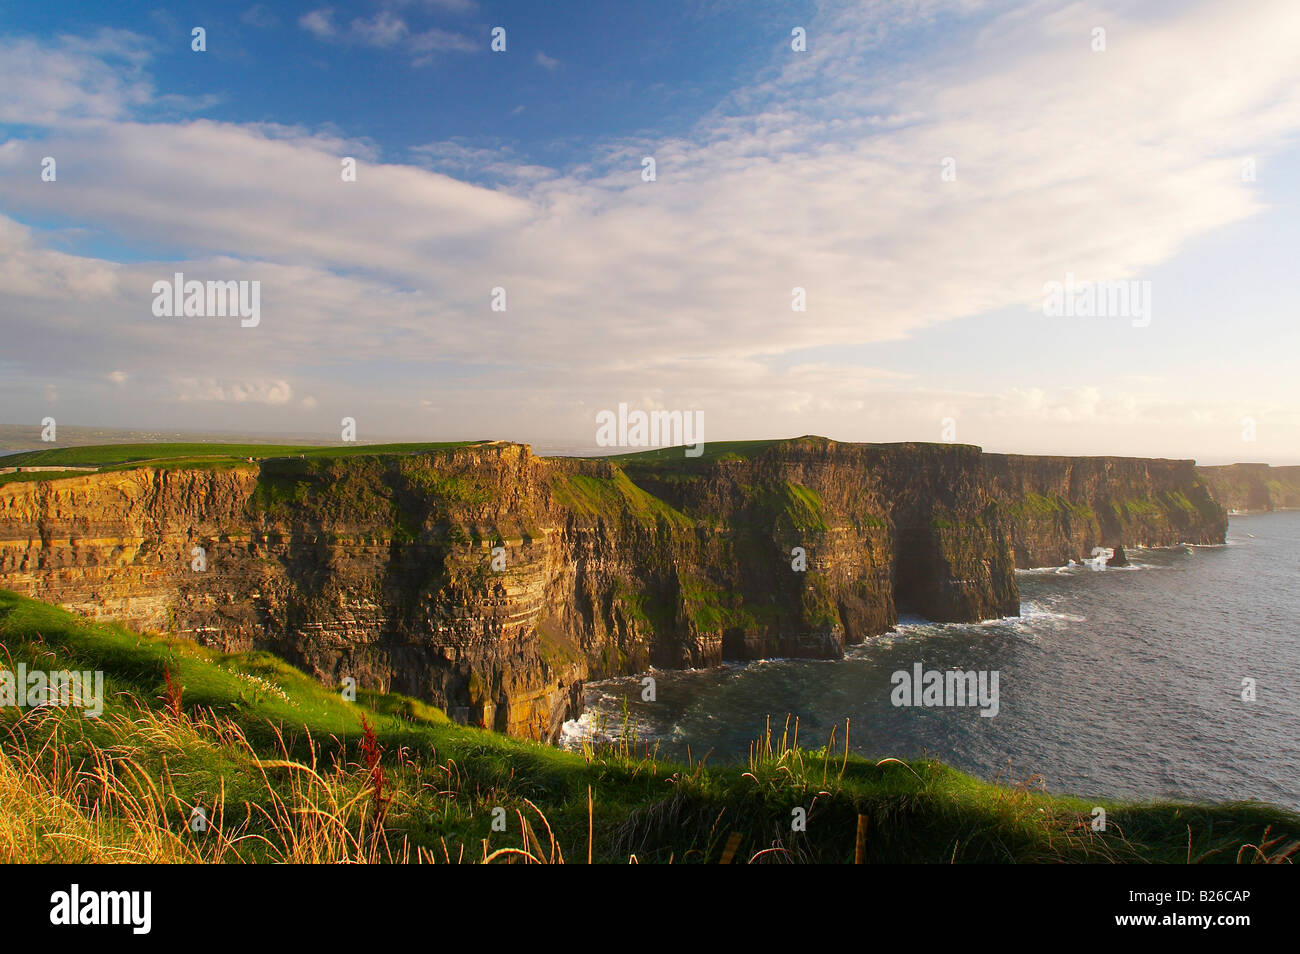 outdoor photo, early evening, Cliffs of Moher, County Clare, Ireland, Europe - Stock Image